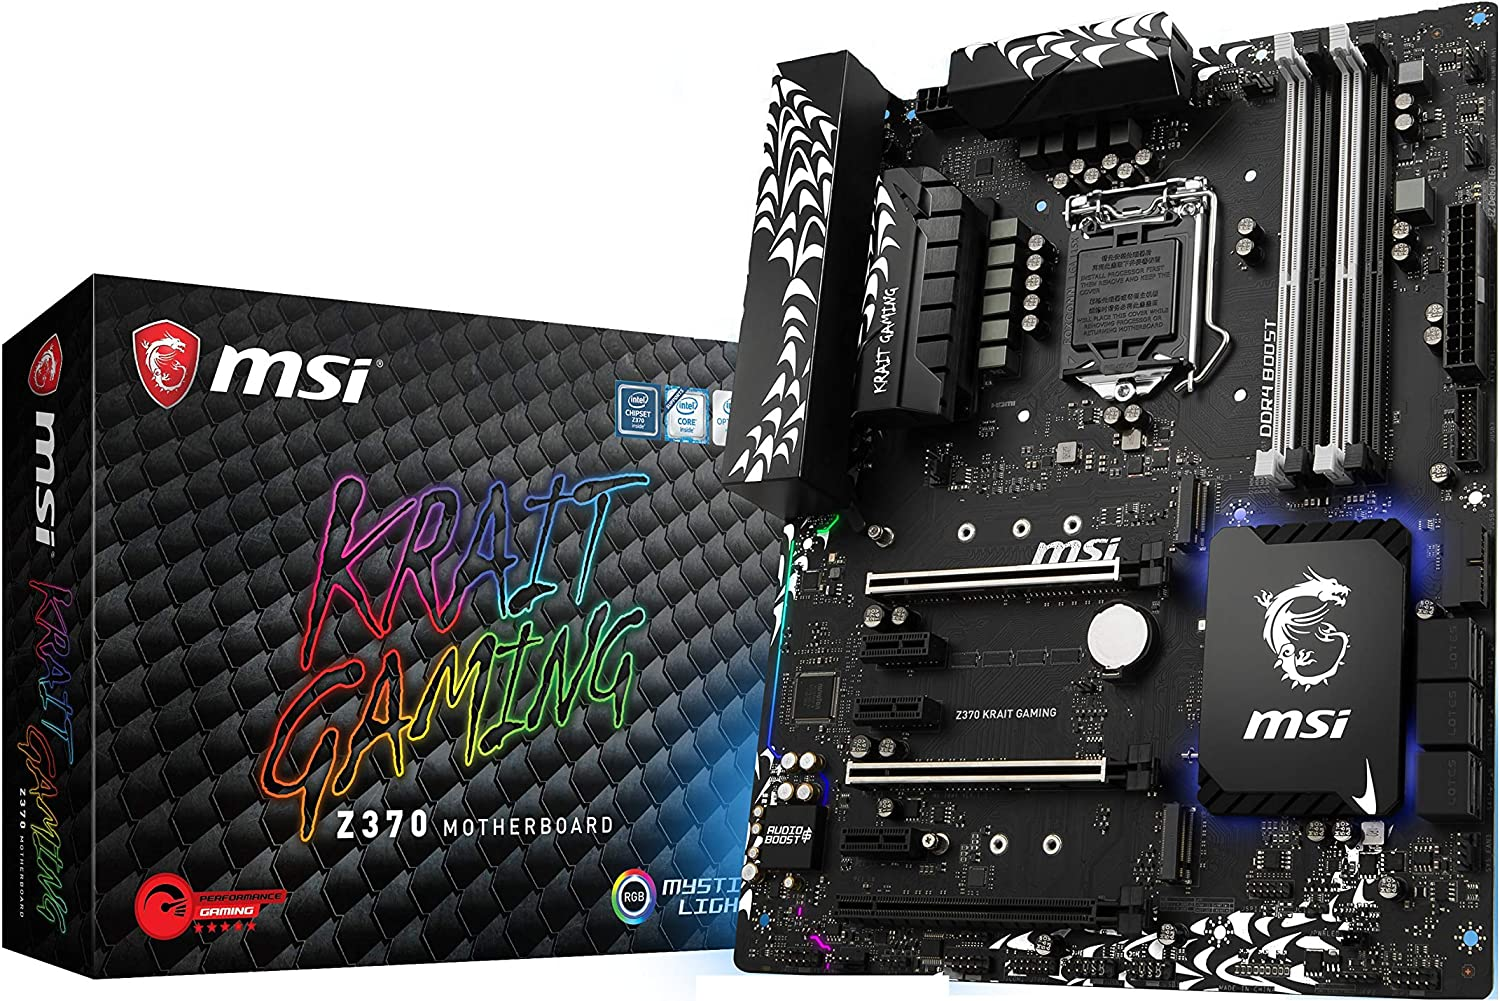 MSI Motherboard Z370 KRAIT GAMING ATX Intel Z370 64GB DDR4 PCI Express SATA LAN